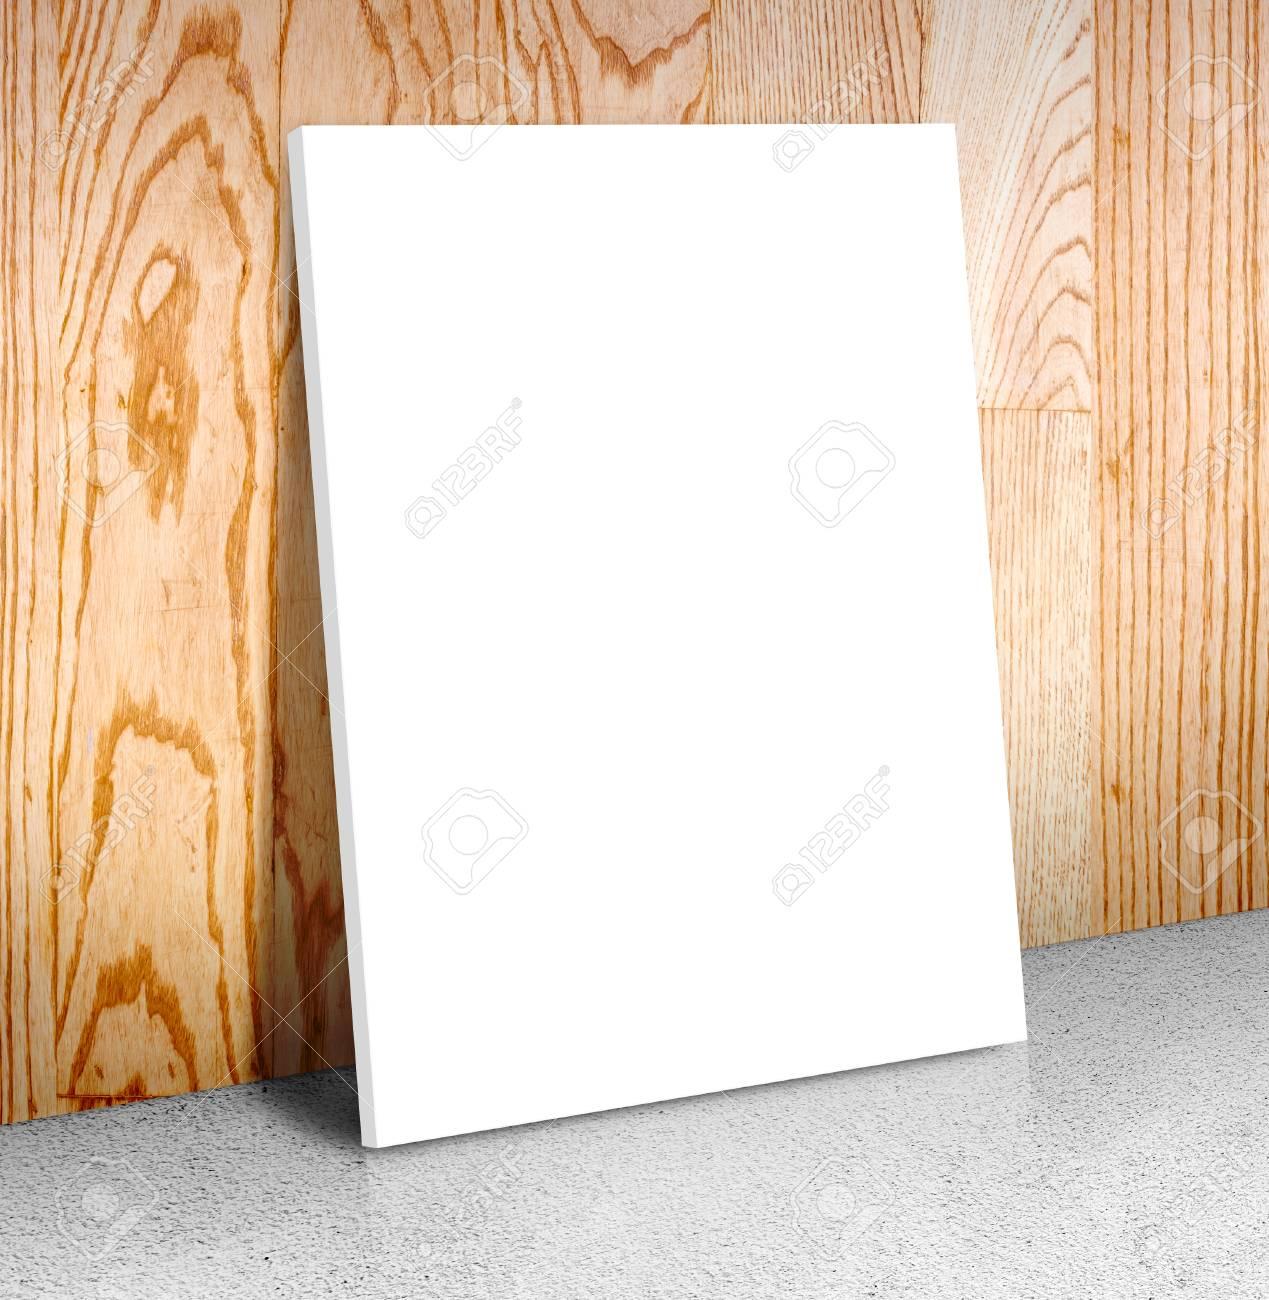 Blank White Poster Frame At Concrete Floor And Wooden Wall, Canvas ...